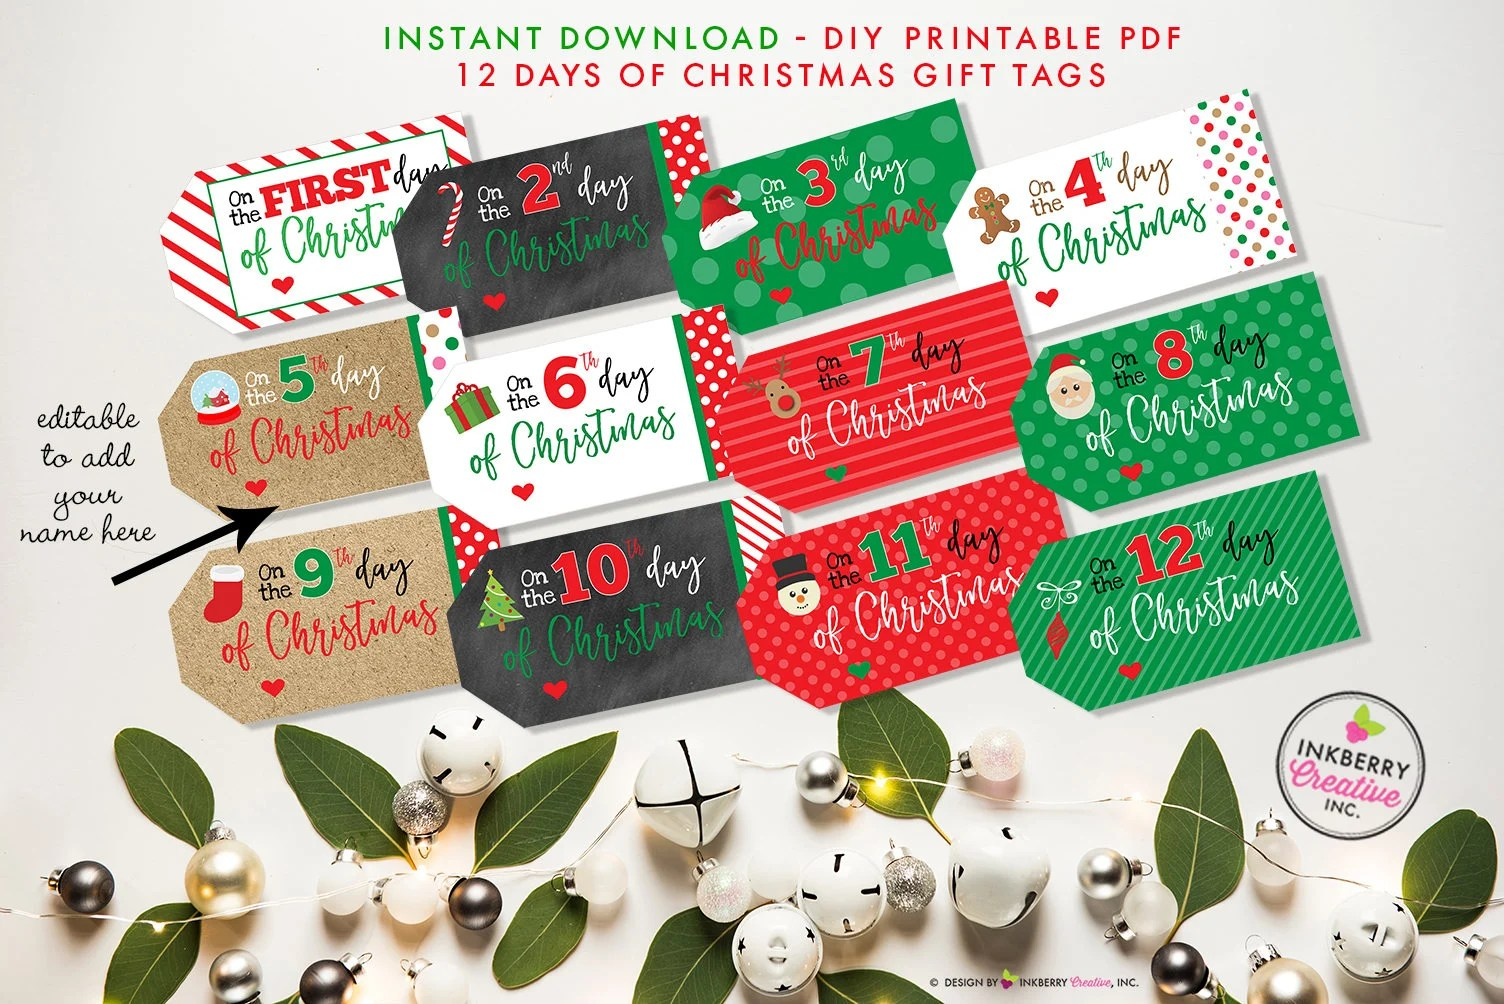 The 12 Days Of Christmas Gifts